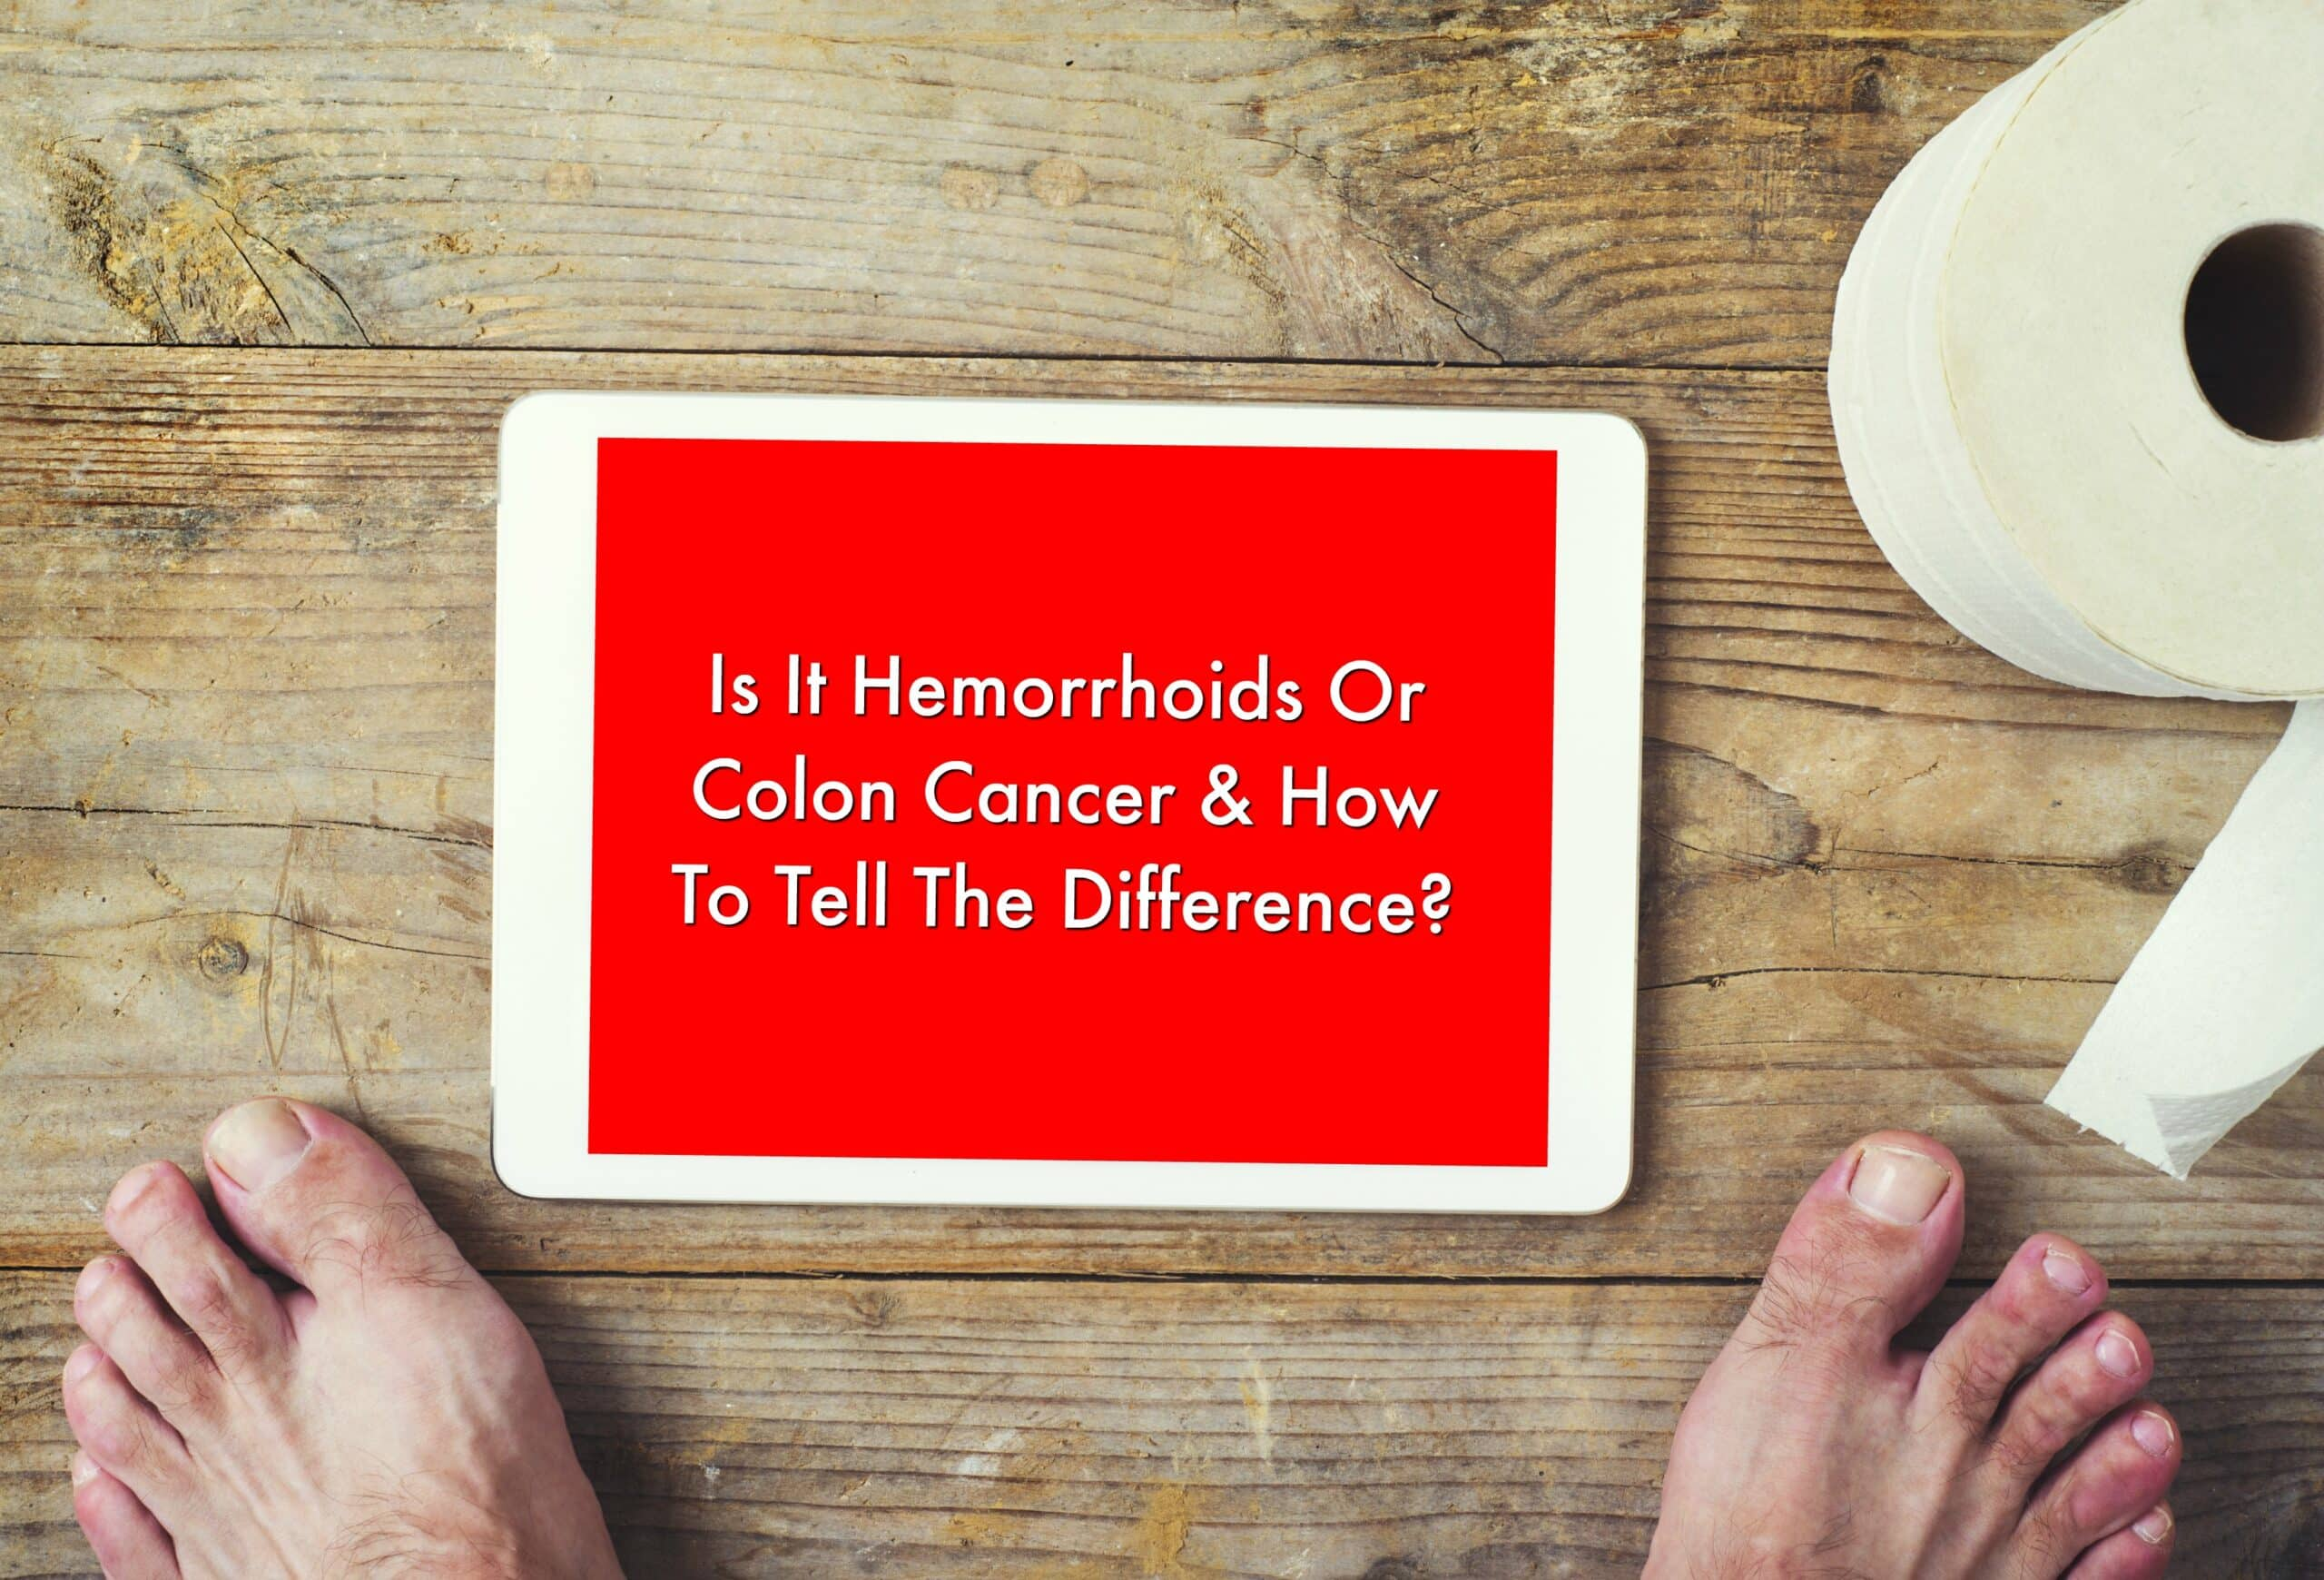 Hemorrhoids Or Colon Cancer How To Tell The Difference